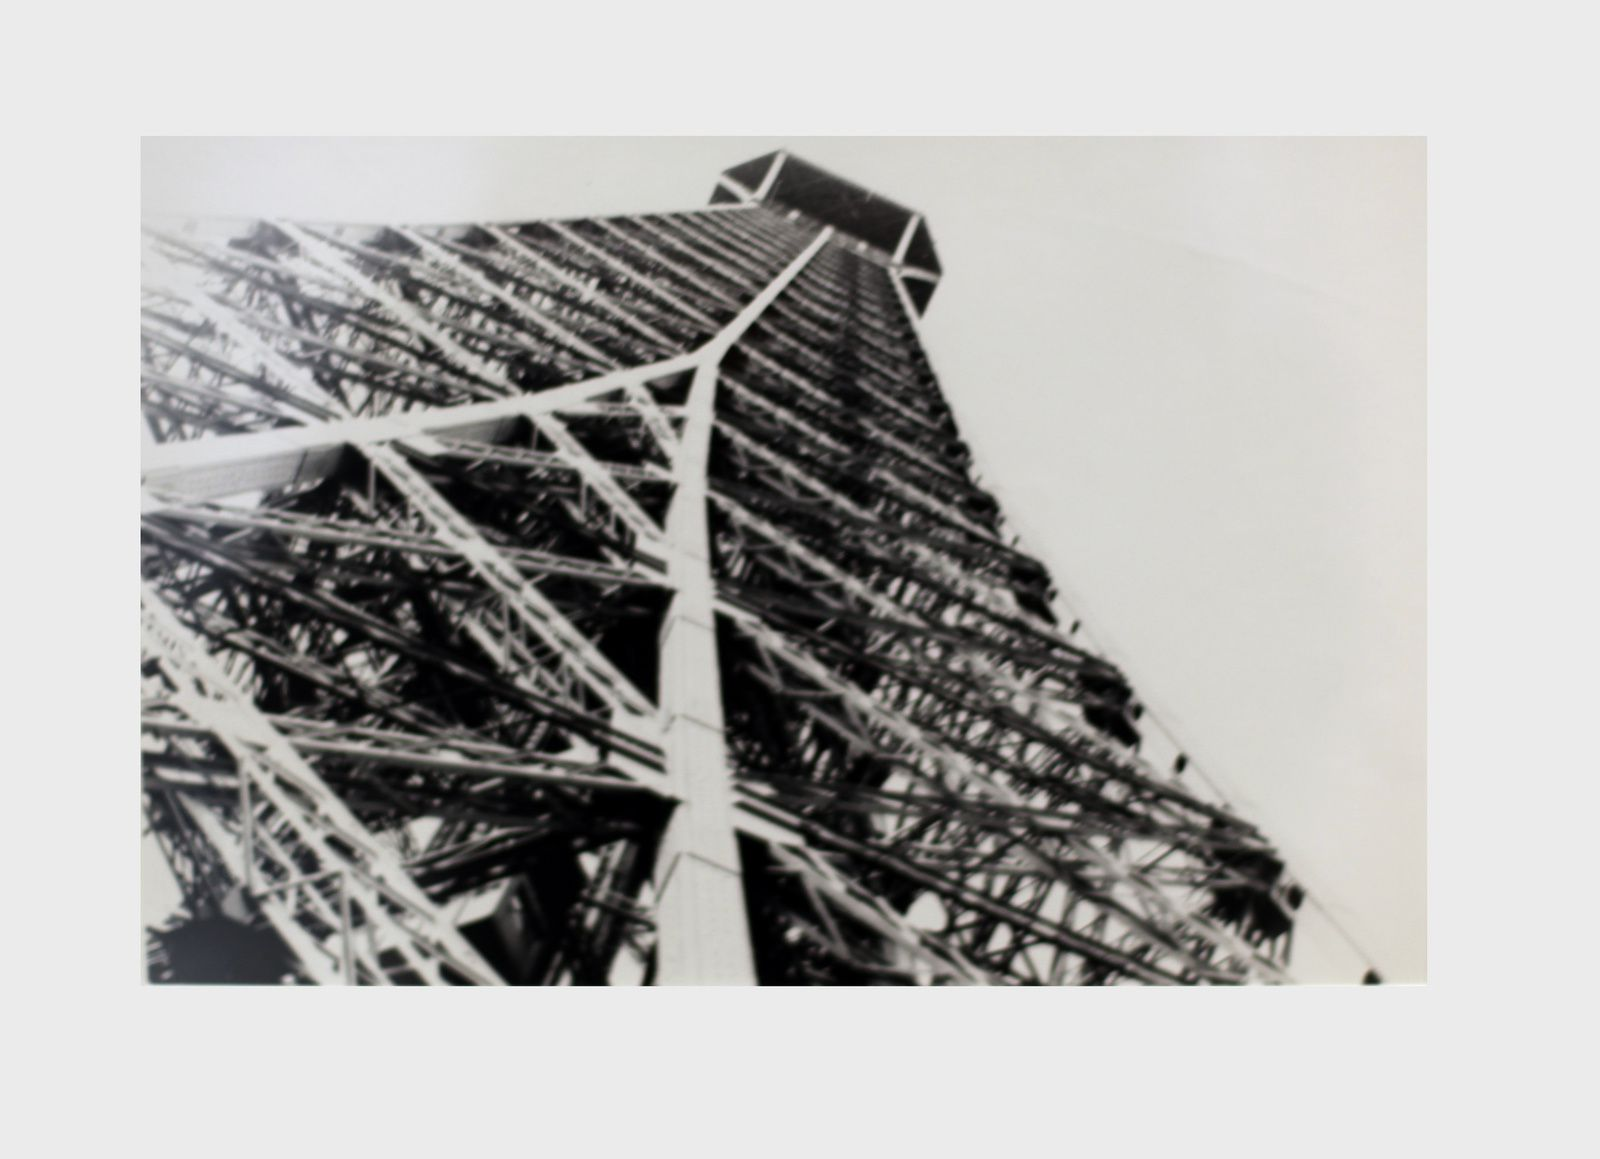 """La tour Eiffel"", 1965 de Eli LOTAR - Courtesy Centre Pompidou, Paris © Photo Éric Simon"